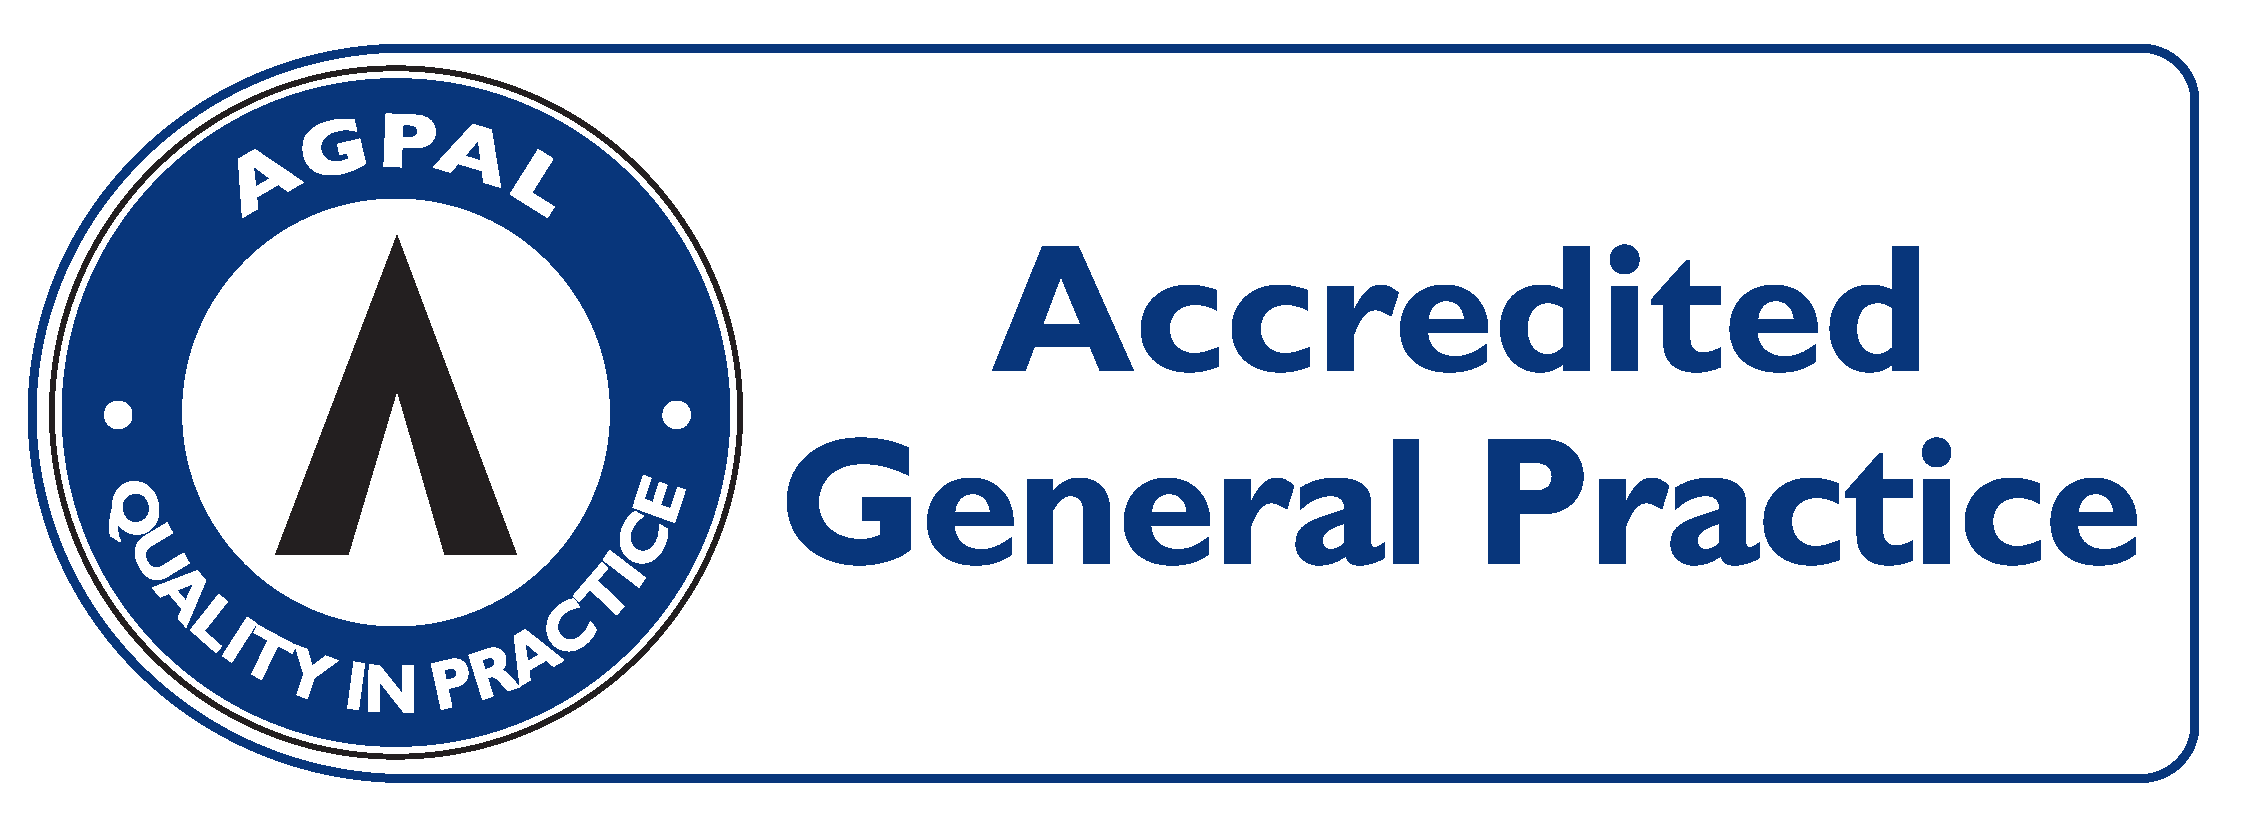 Accredited General Practice Symbol